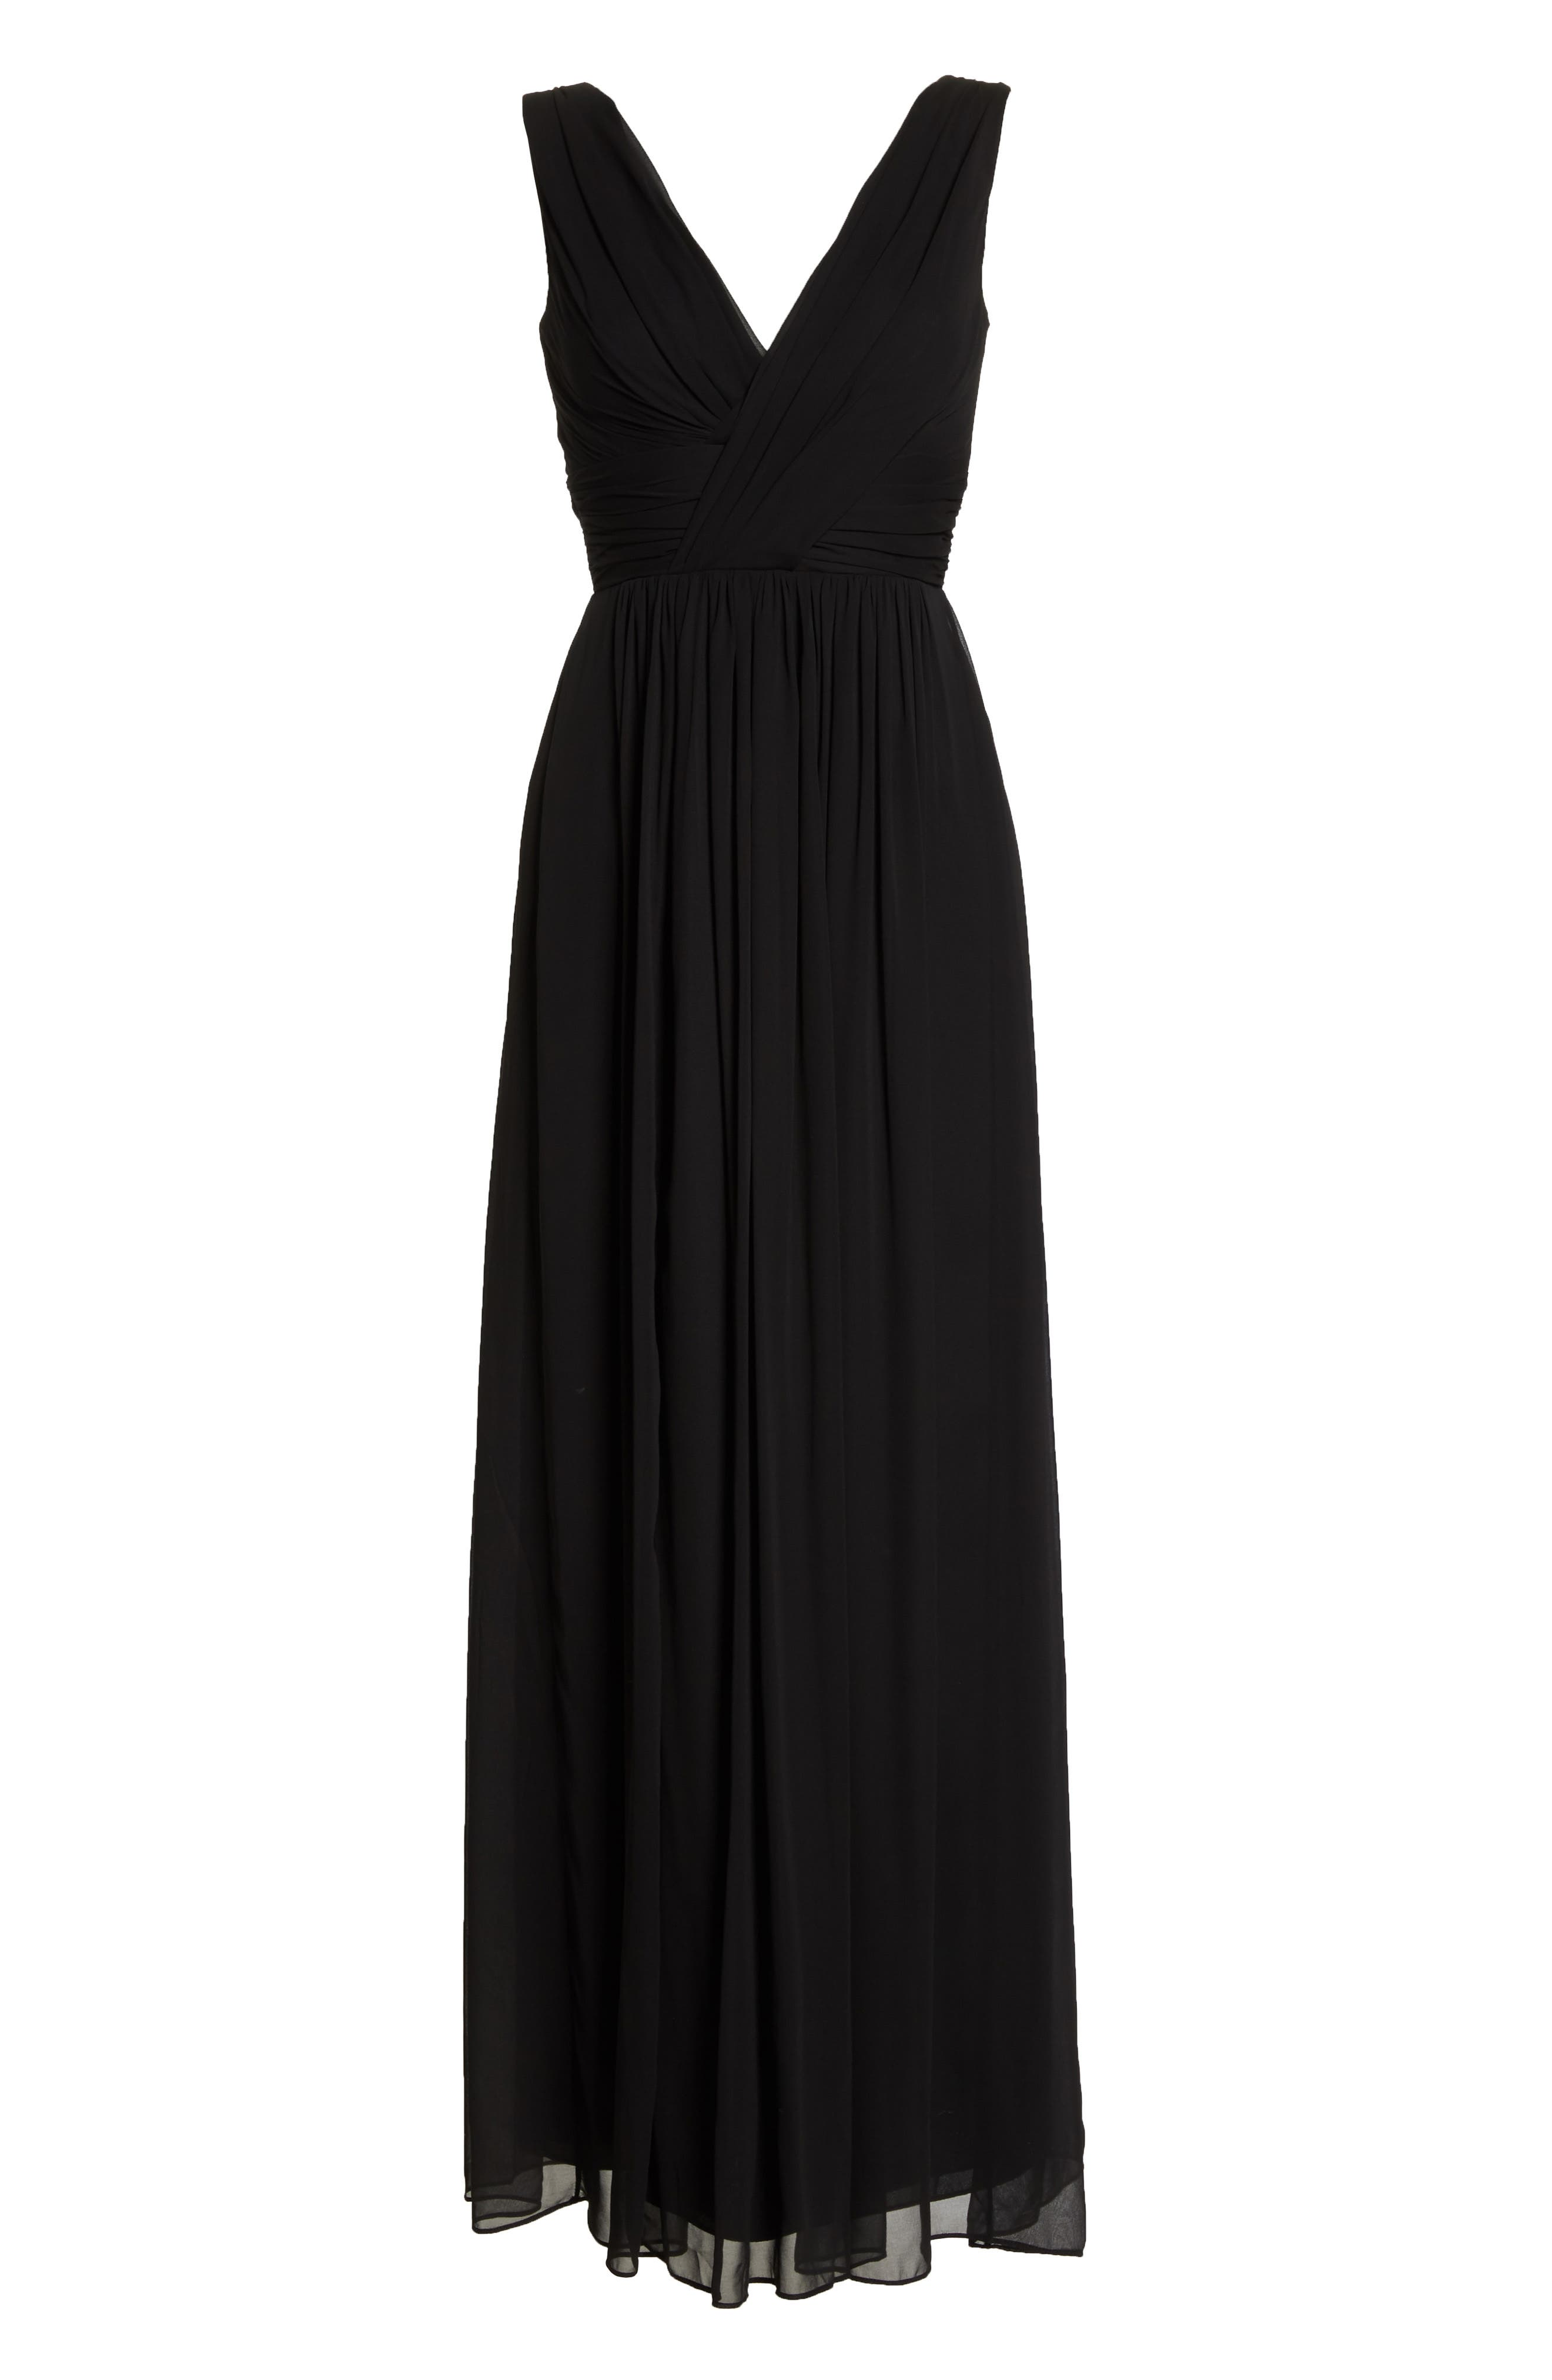 DESSY COLLECTION, Lux V-Neck Chiffon Gown, Alternate thumbnail 3, color, BLACK